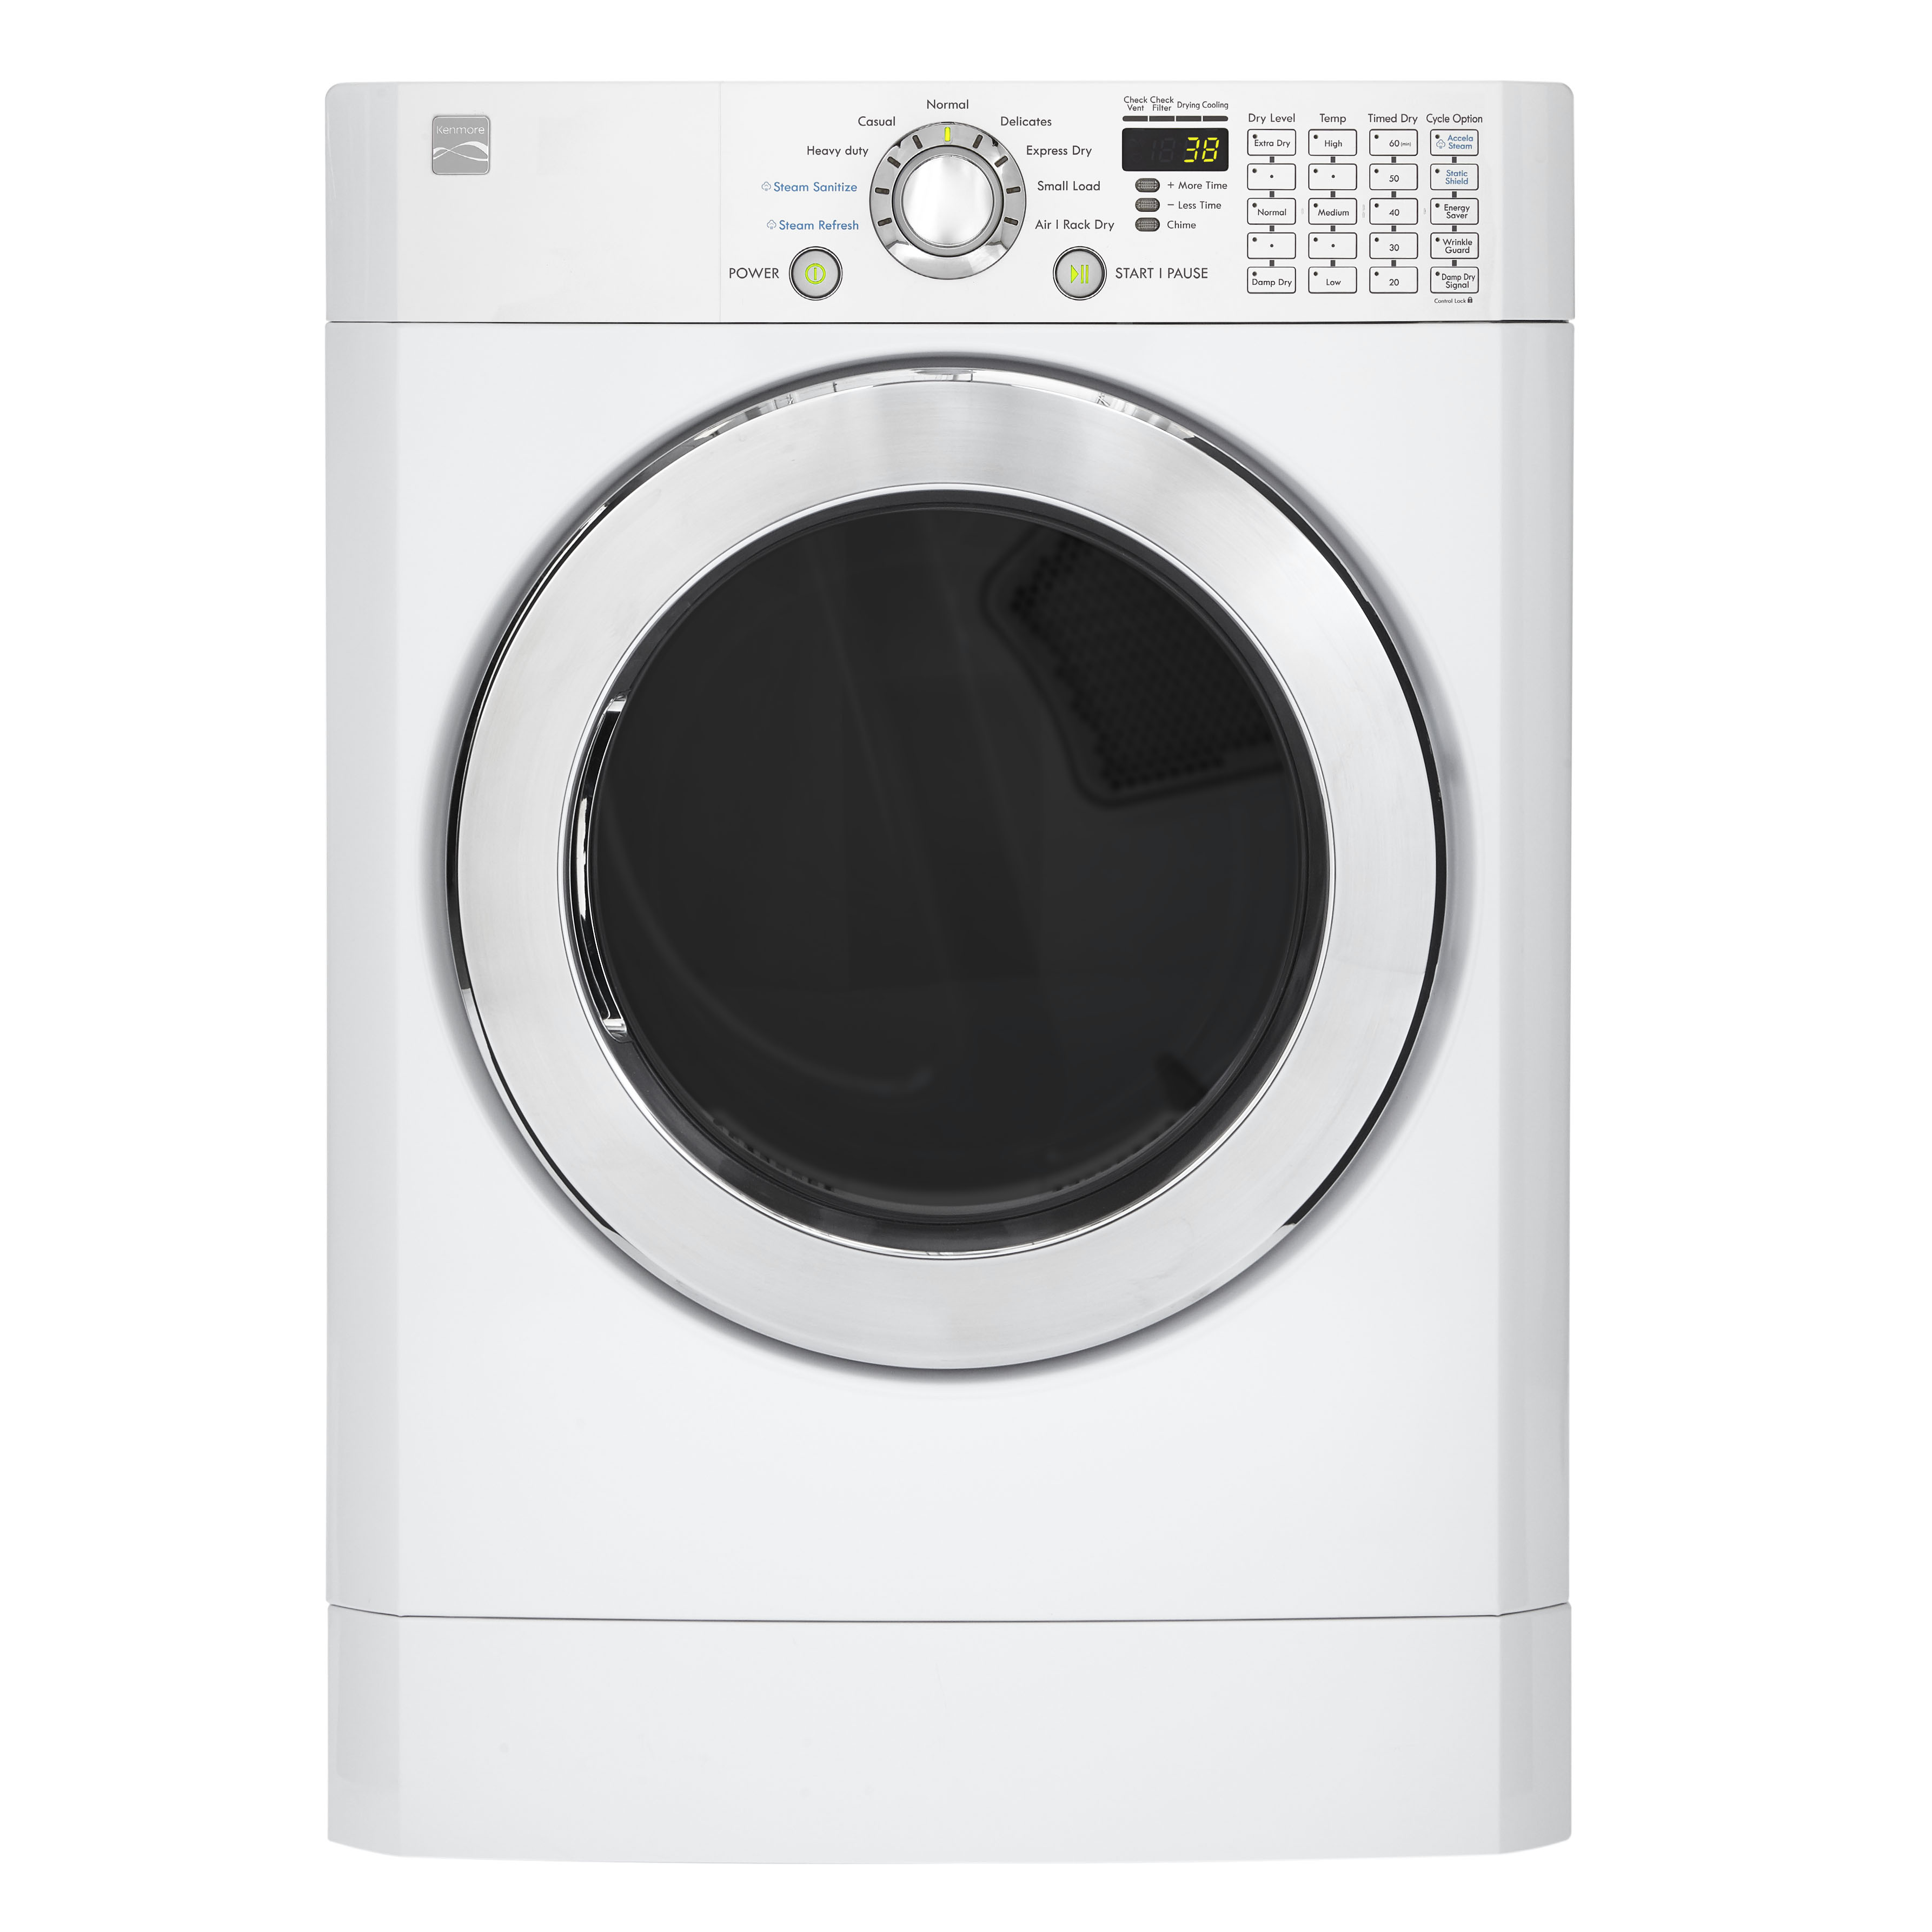 hight resolution of kenmore 91392 7 3 cu ft front load flip control gas dryer white gas dryer i d be happy for any sears gas dryer diagram just to